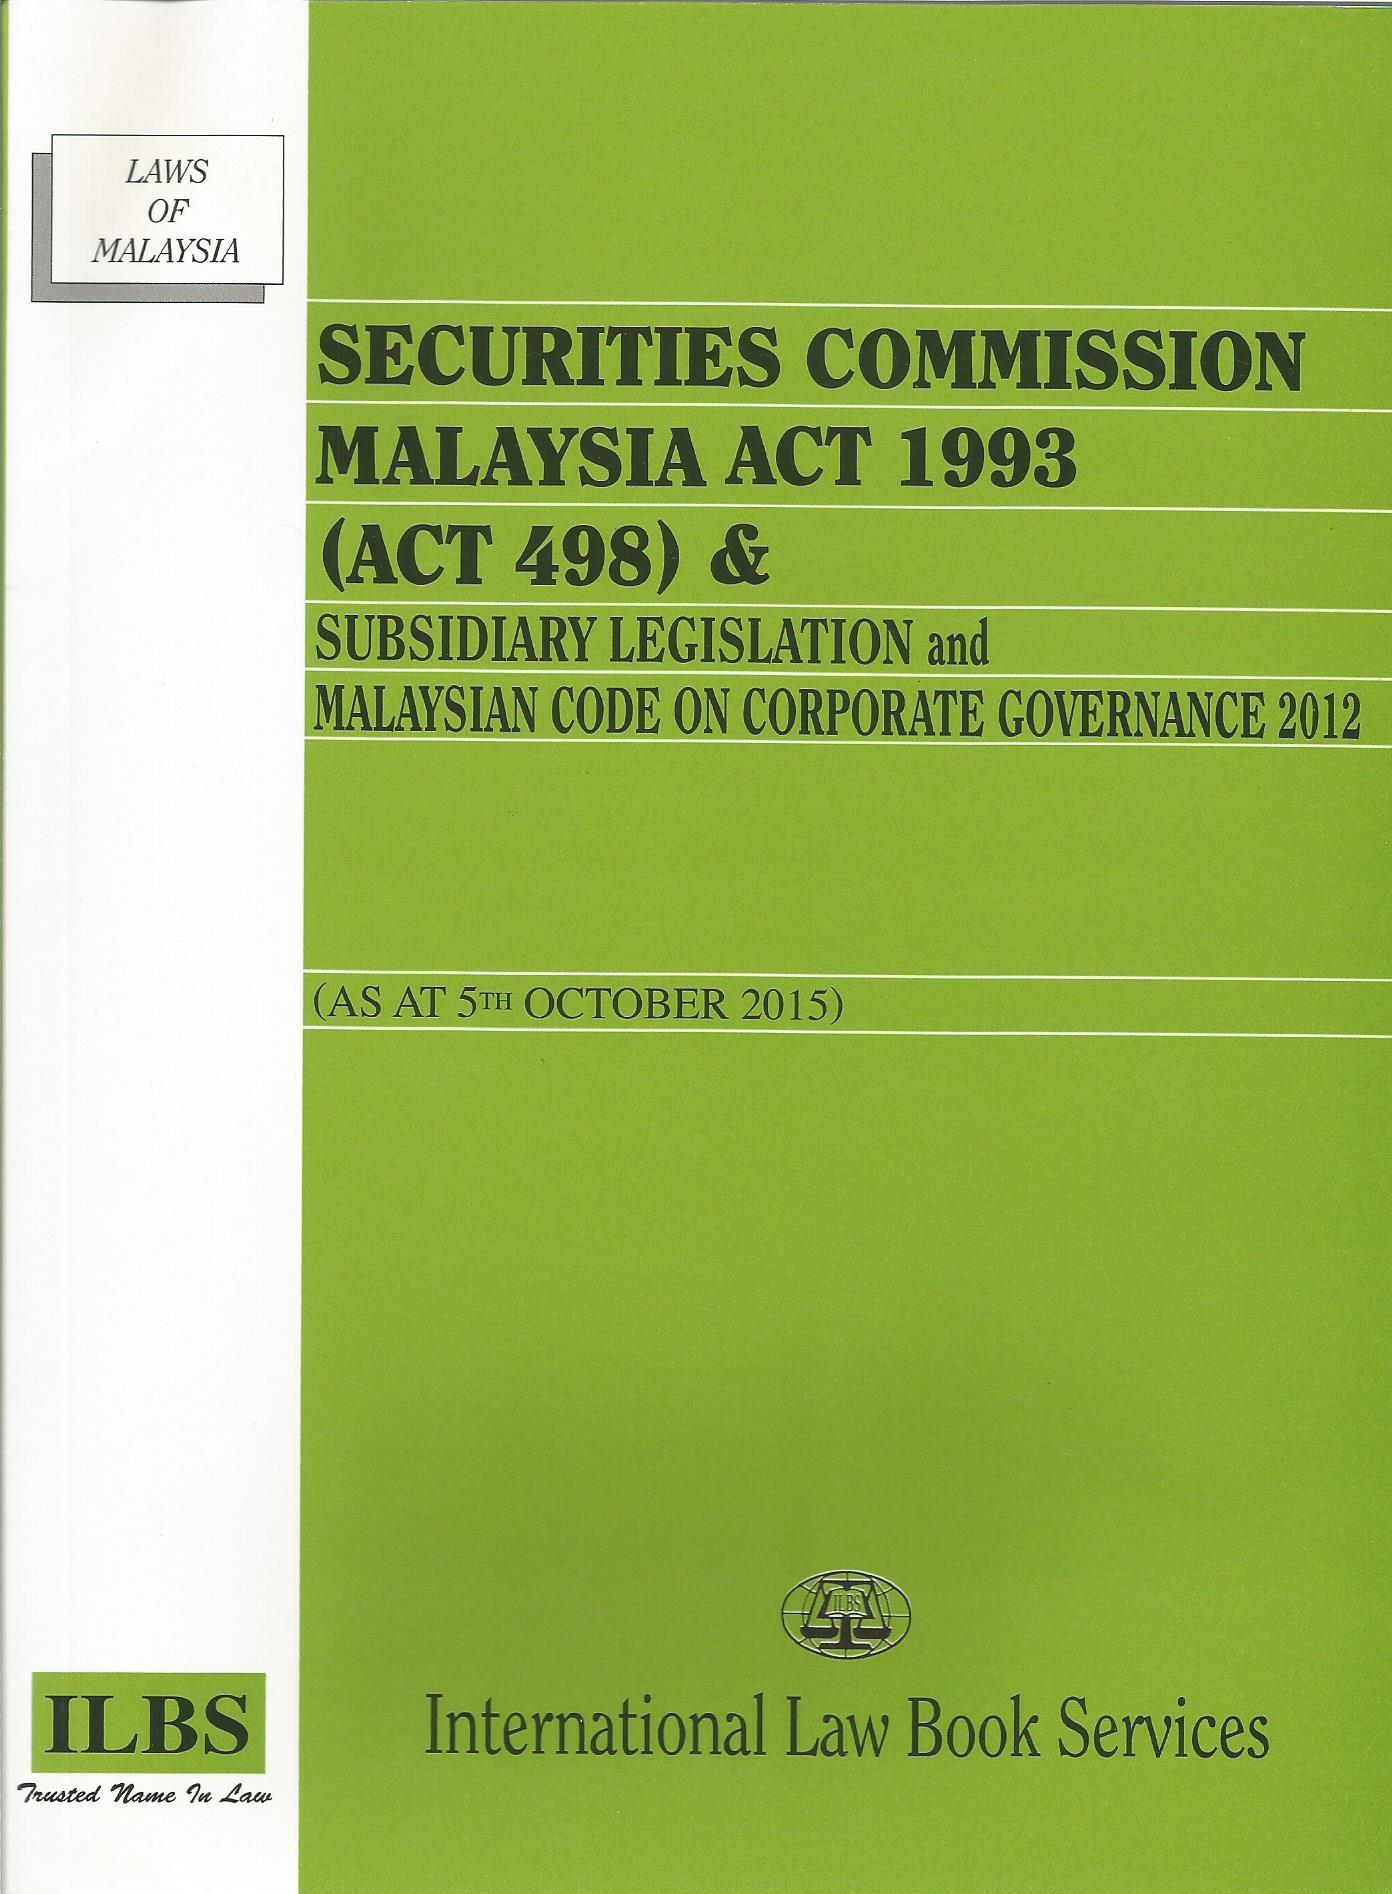 securities commission act rm35 0.40001.jpg